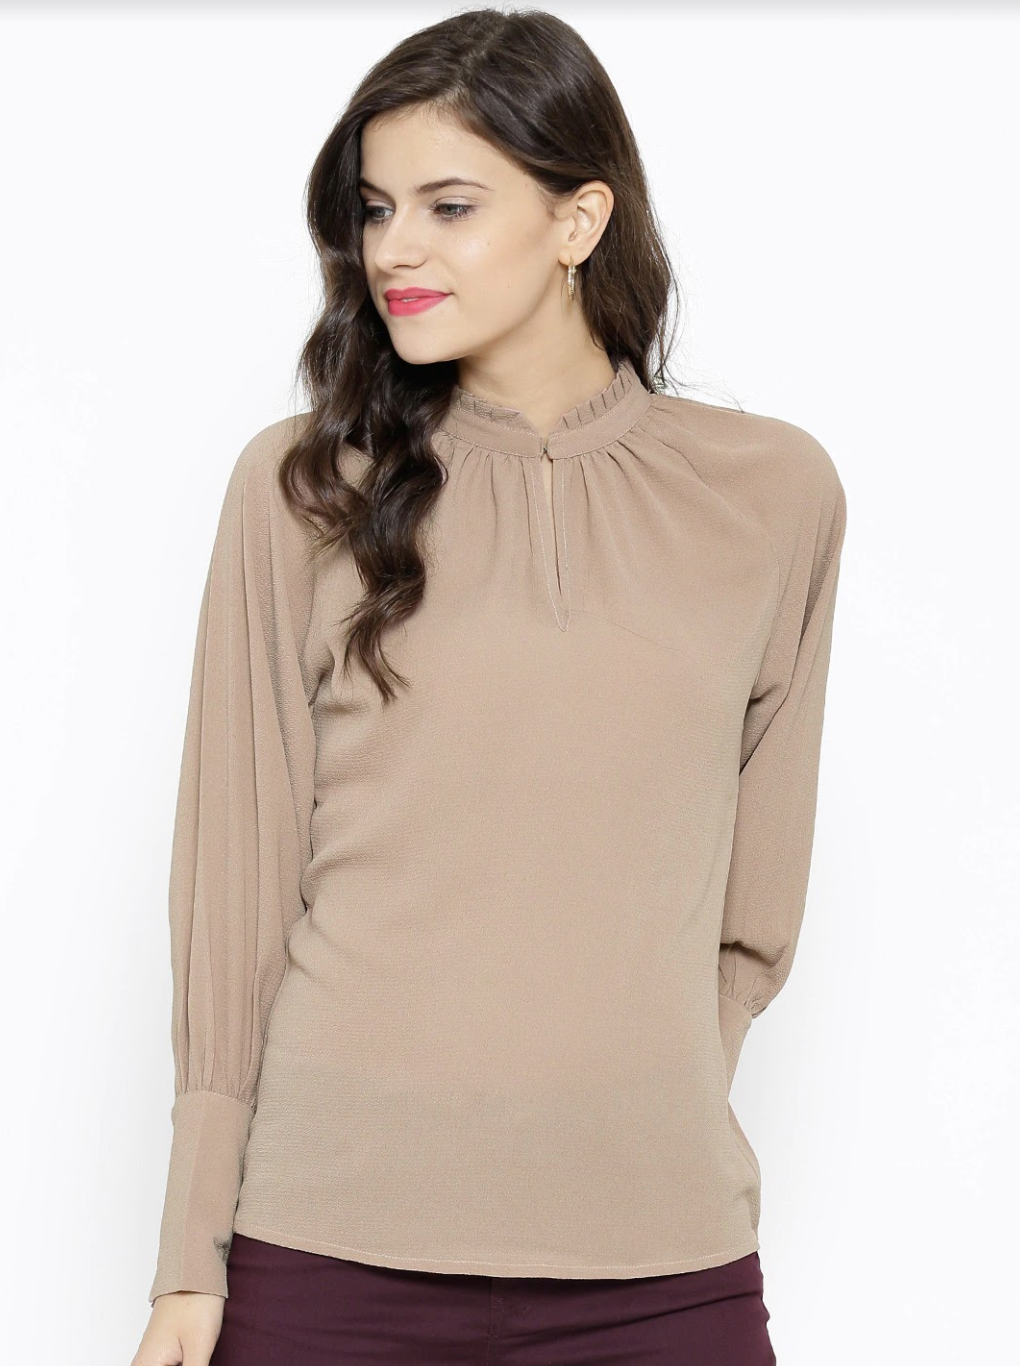 GEORGETTE TEXTURED TOP